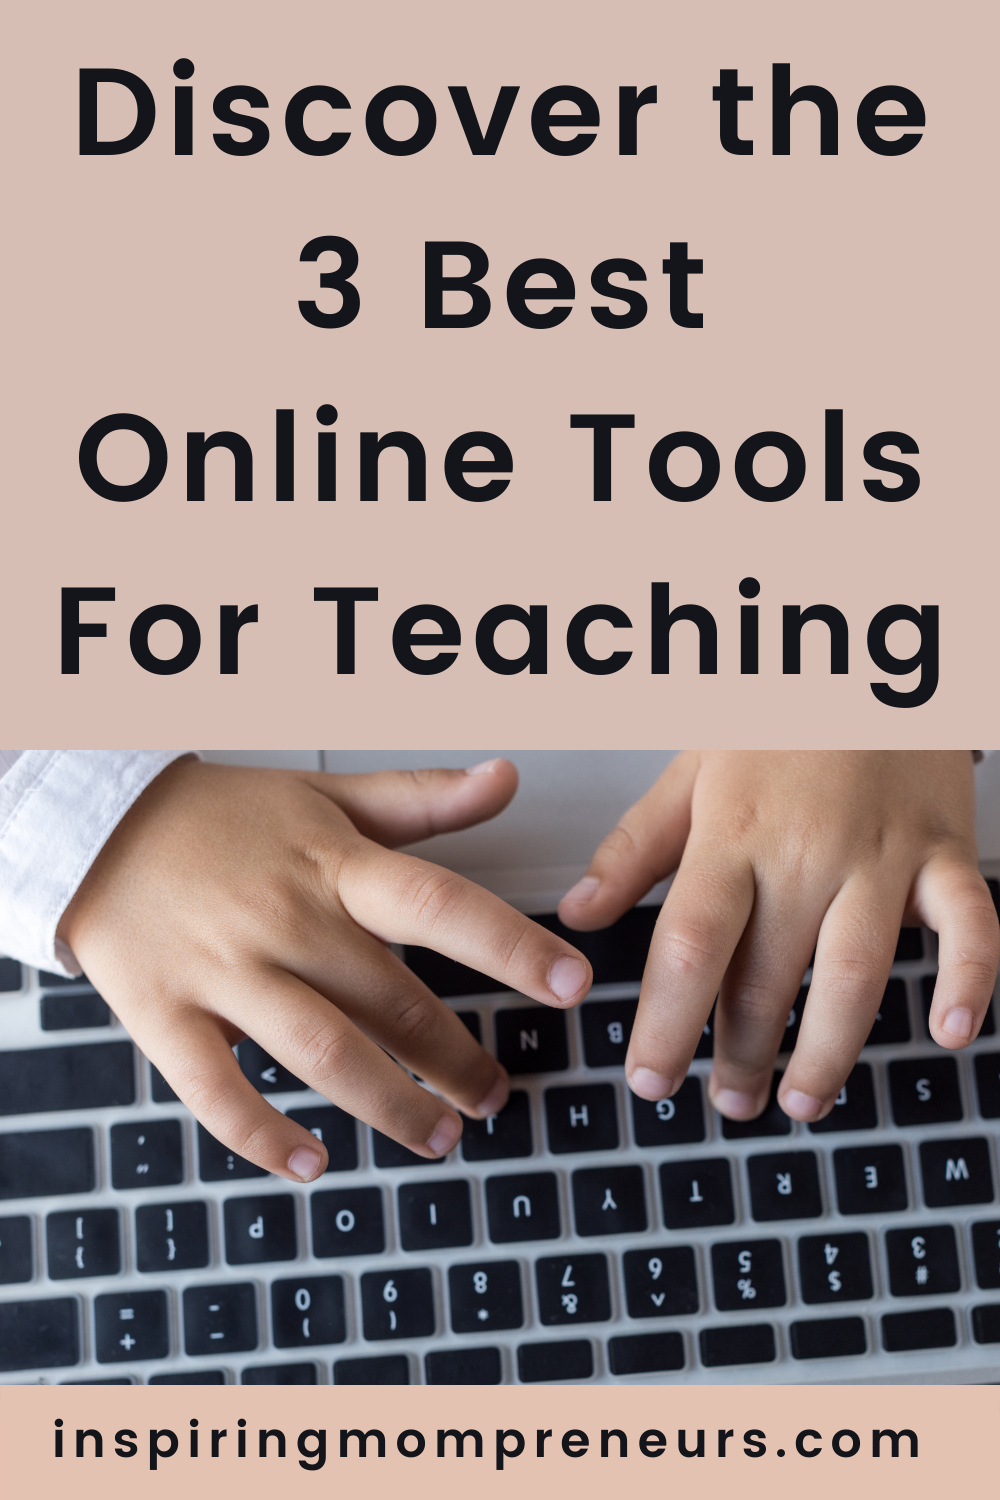 School is the best place for children to learn everything they need to survive in society. In this article, we focus on the 3 best online tools for teaching.  #bestonlinetools